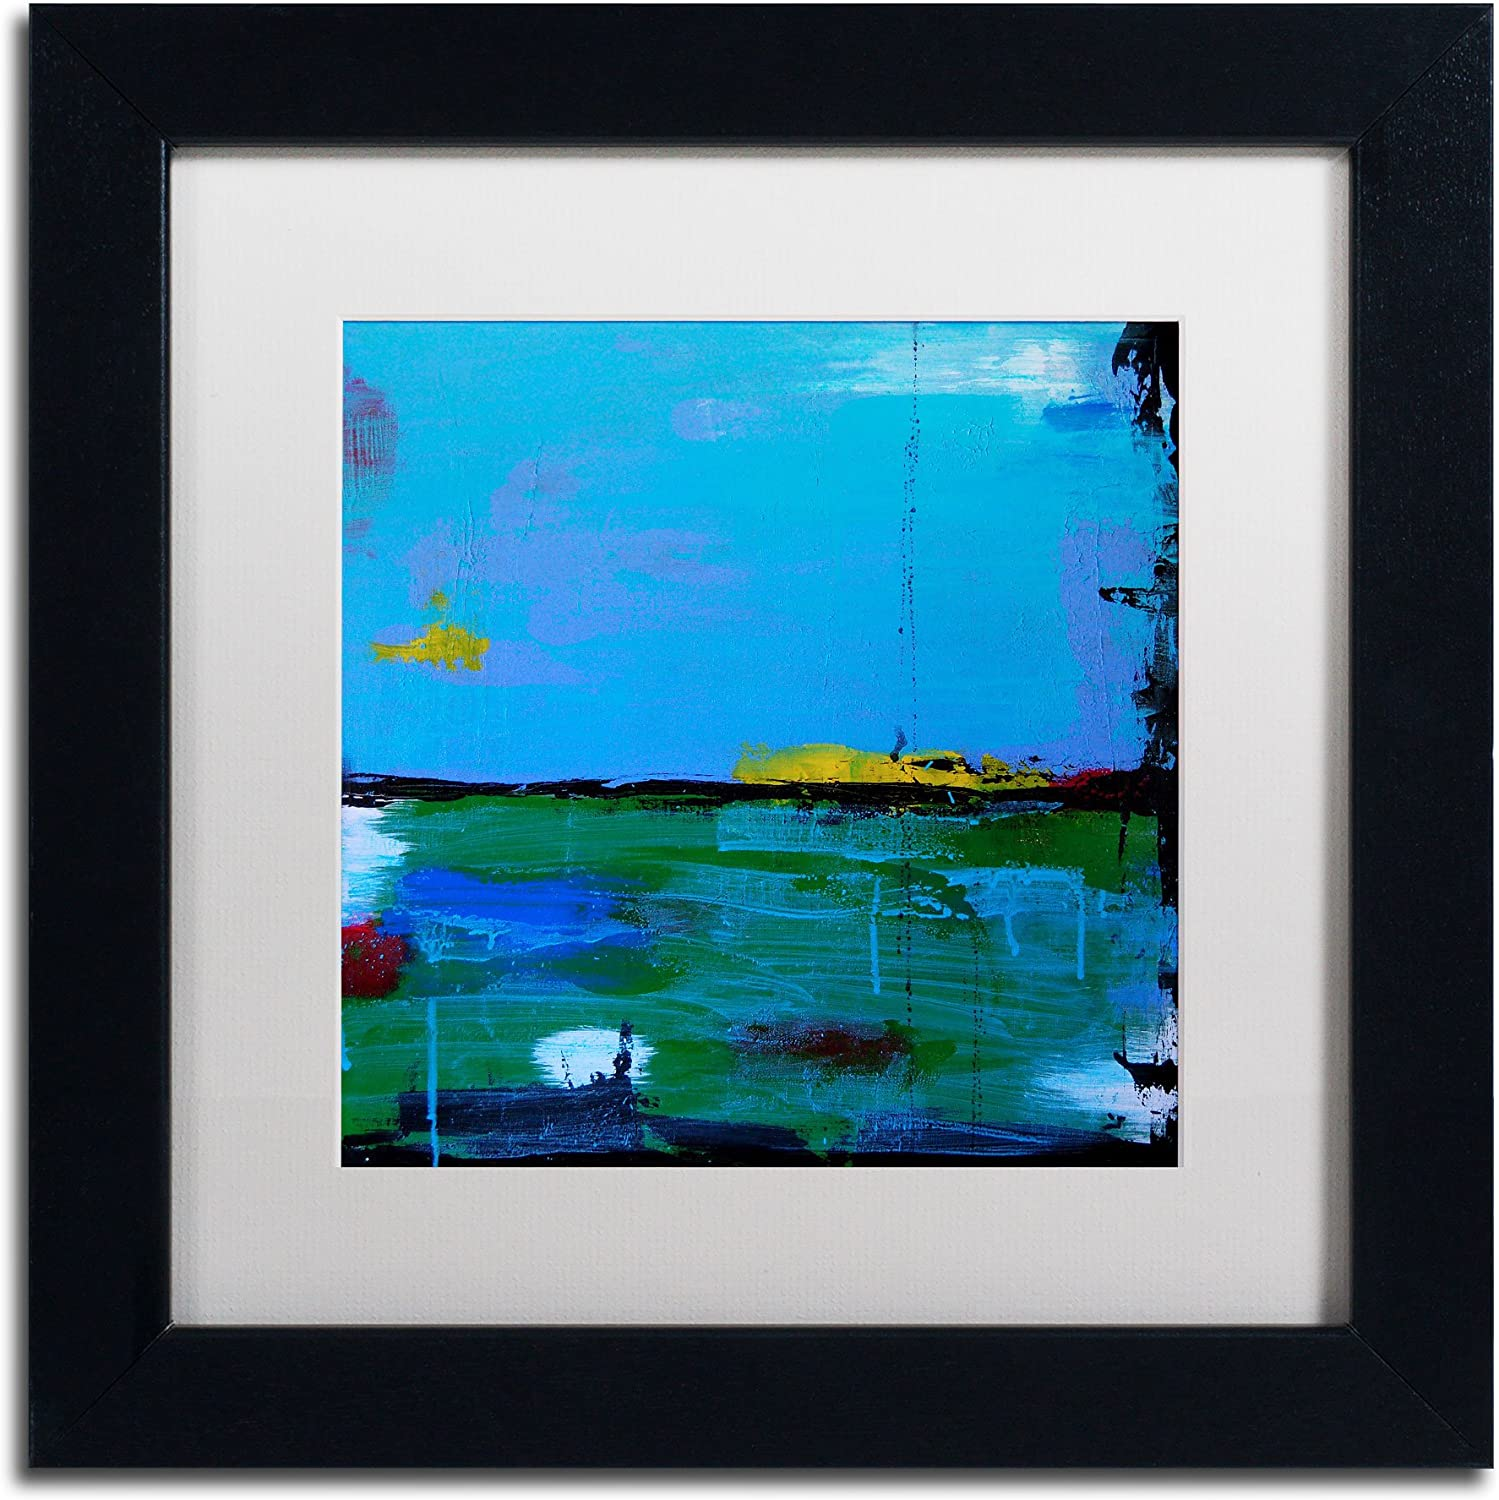 Trademark Fine Art Sunrise Art by Nicole Dietz in Black Frame, 11 by 11Inch, White Matte